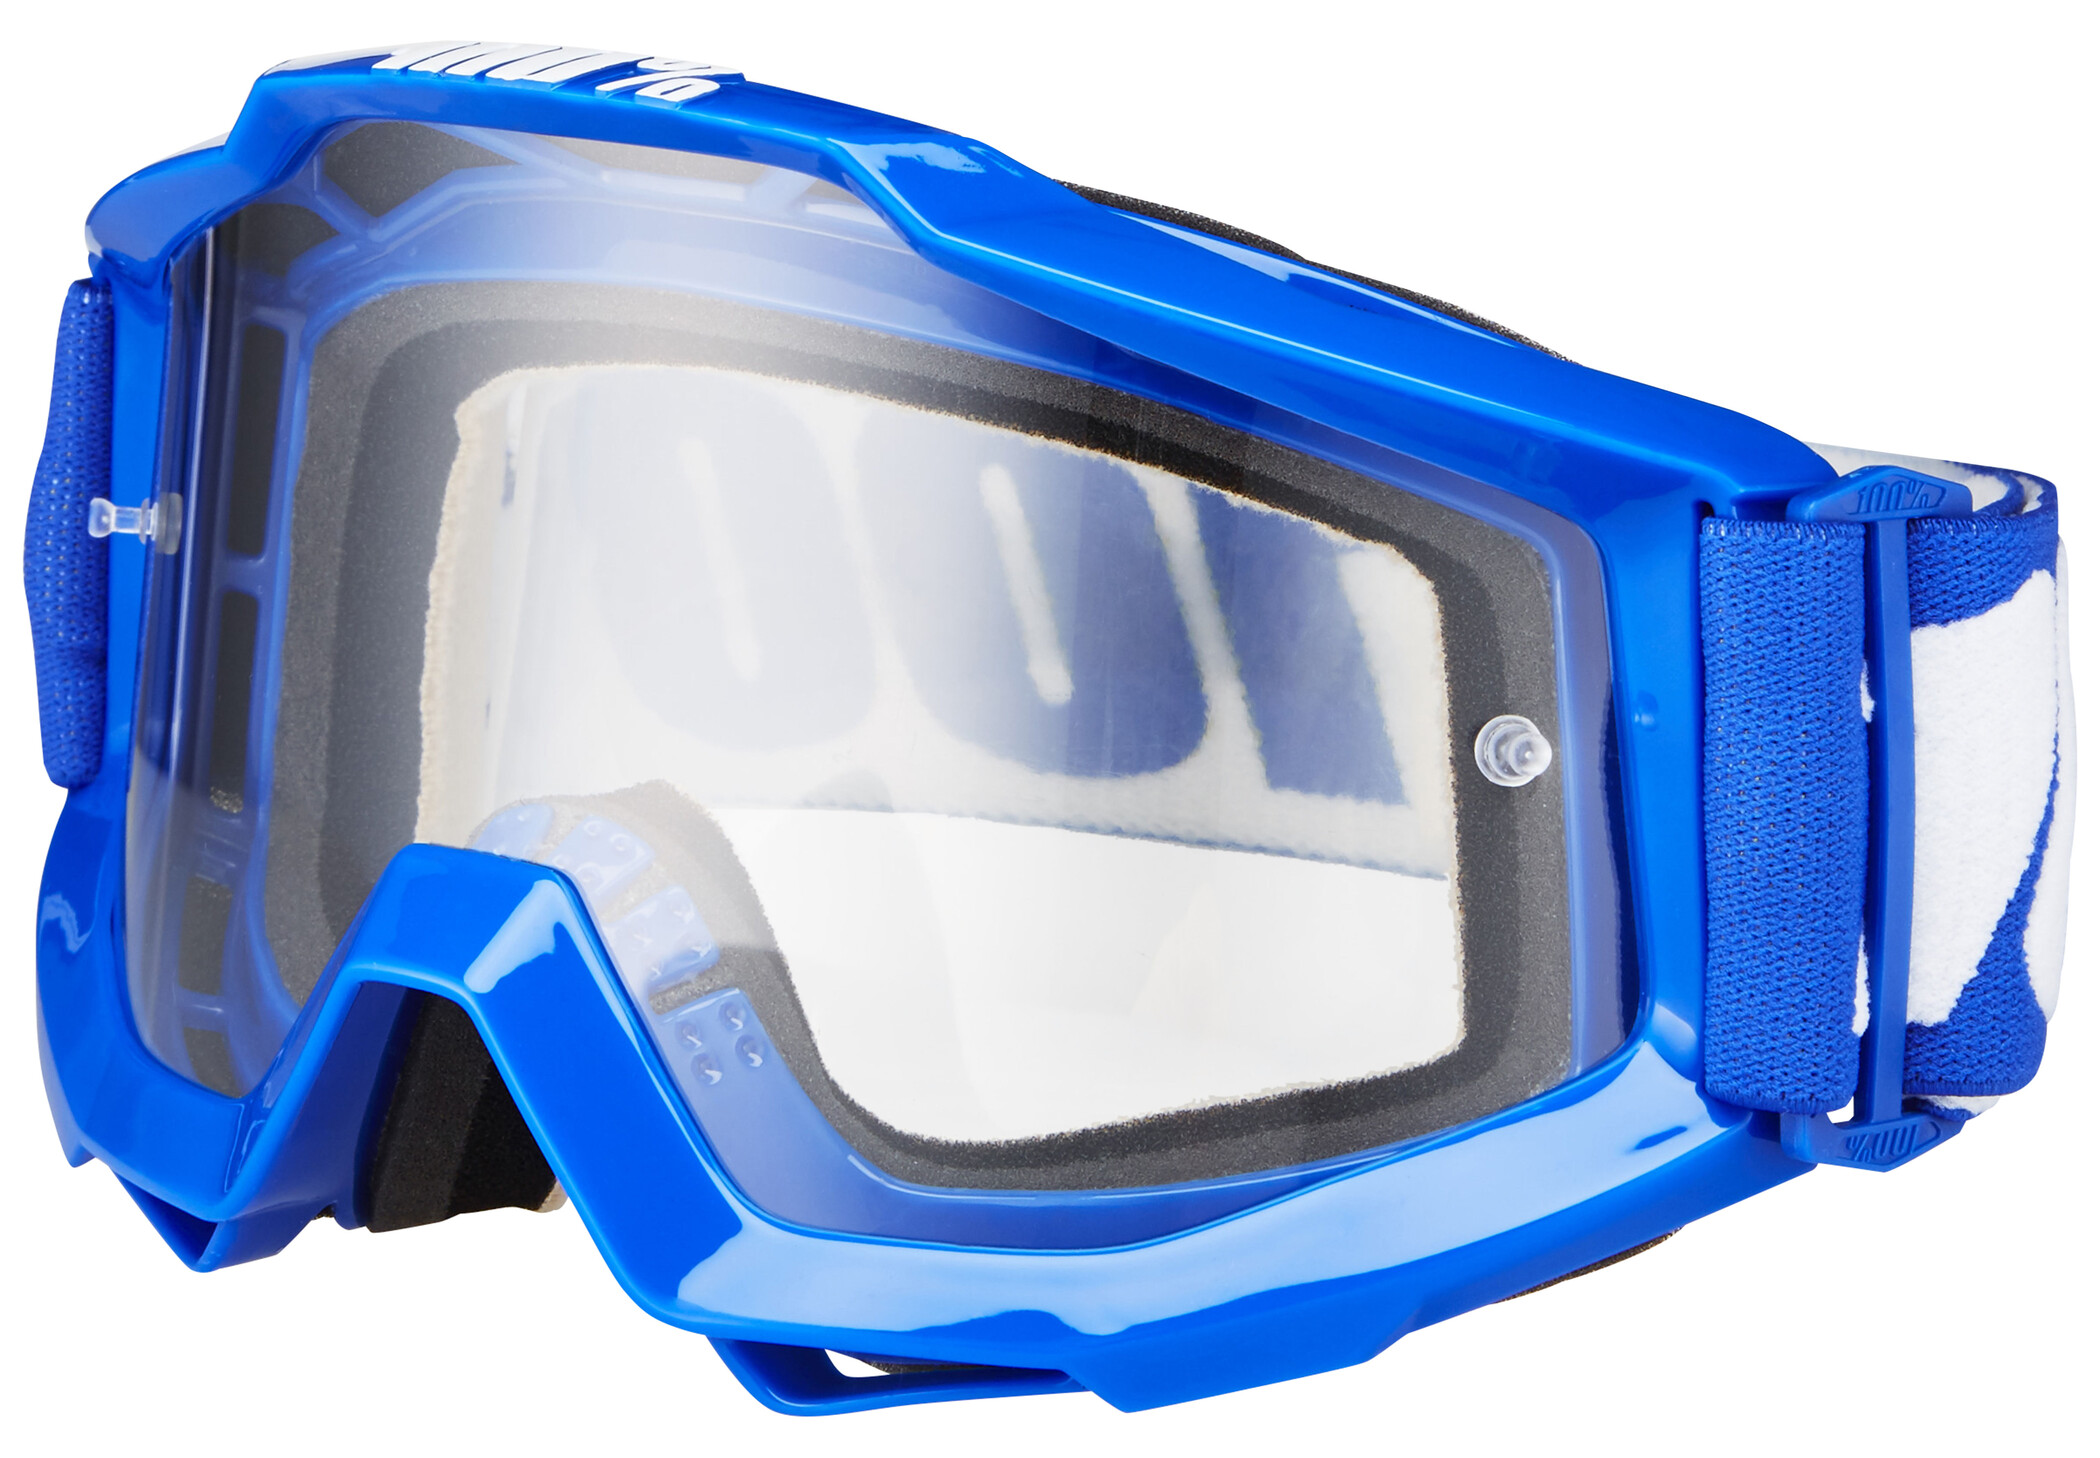 100% Accuri Anti Fog Clear Goggles, reflex blue | Briller